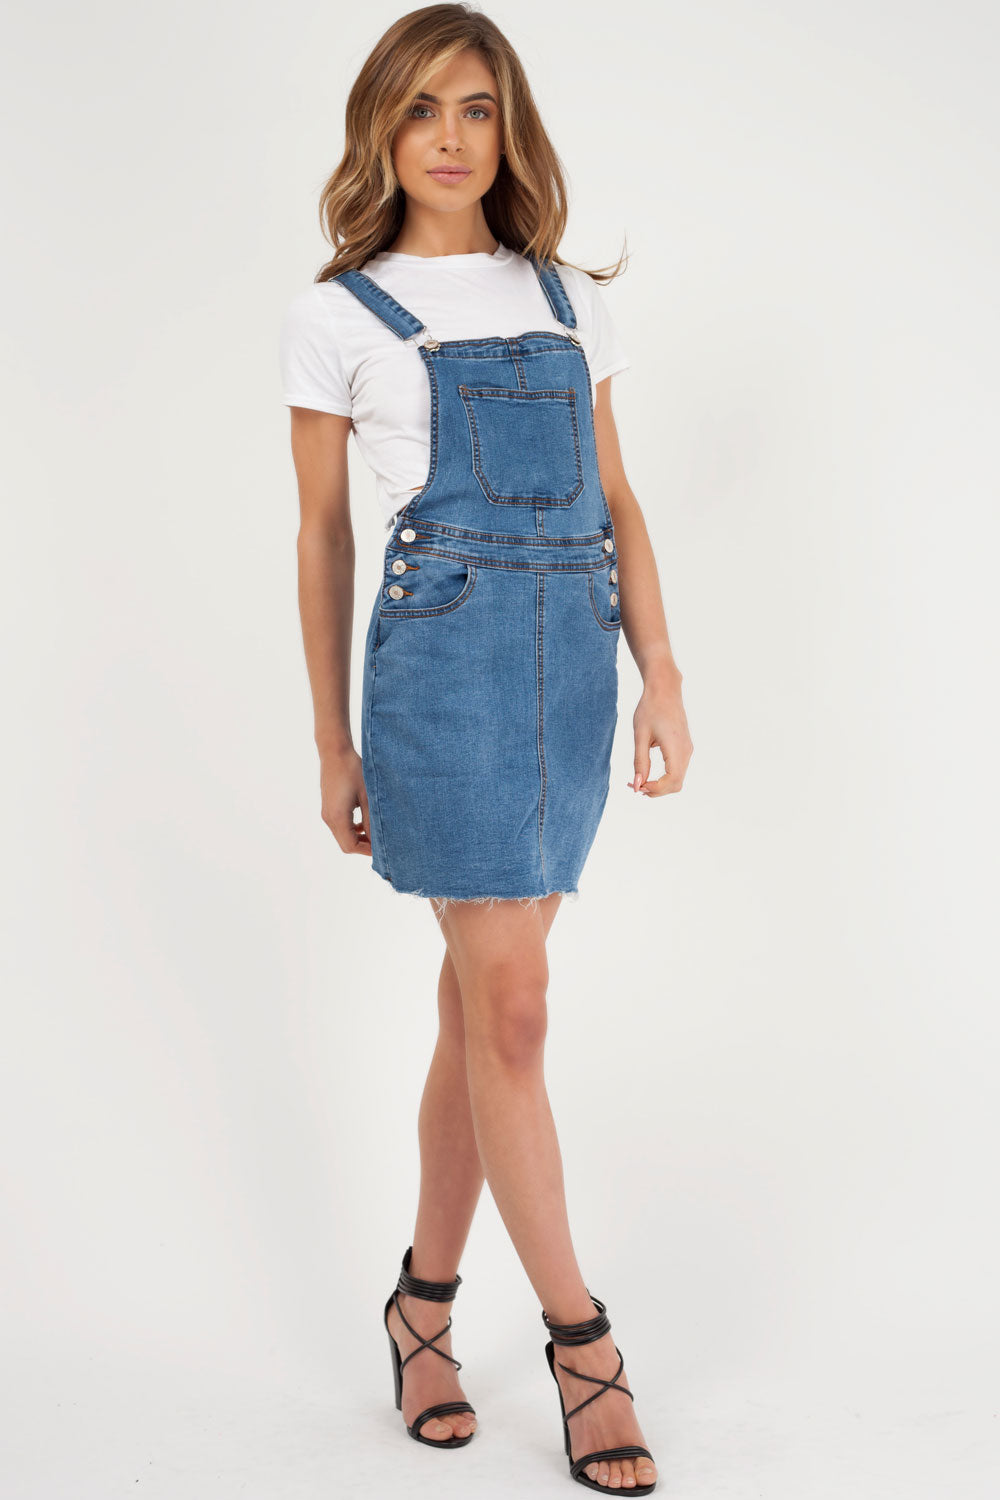 denim pinafore dress styledup fashion